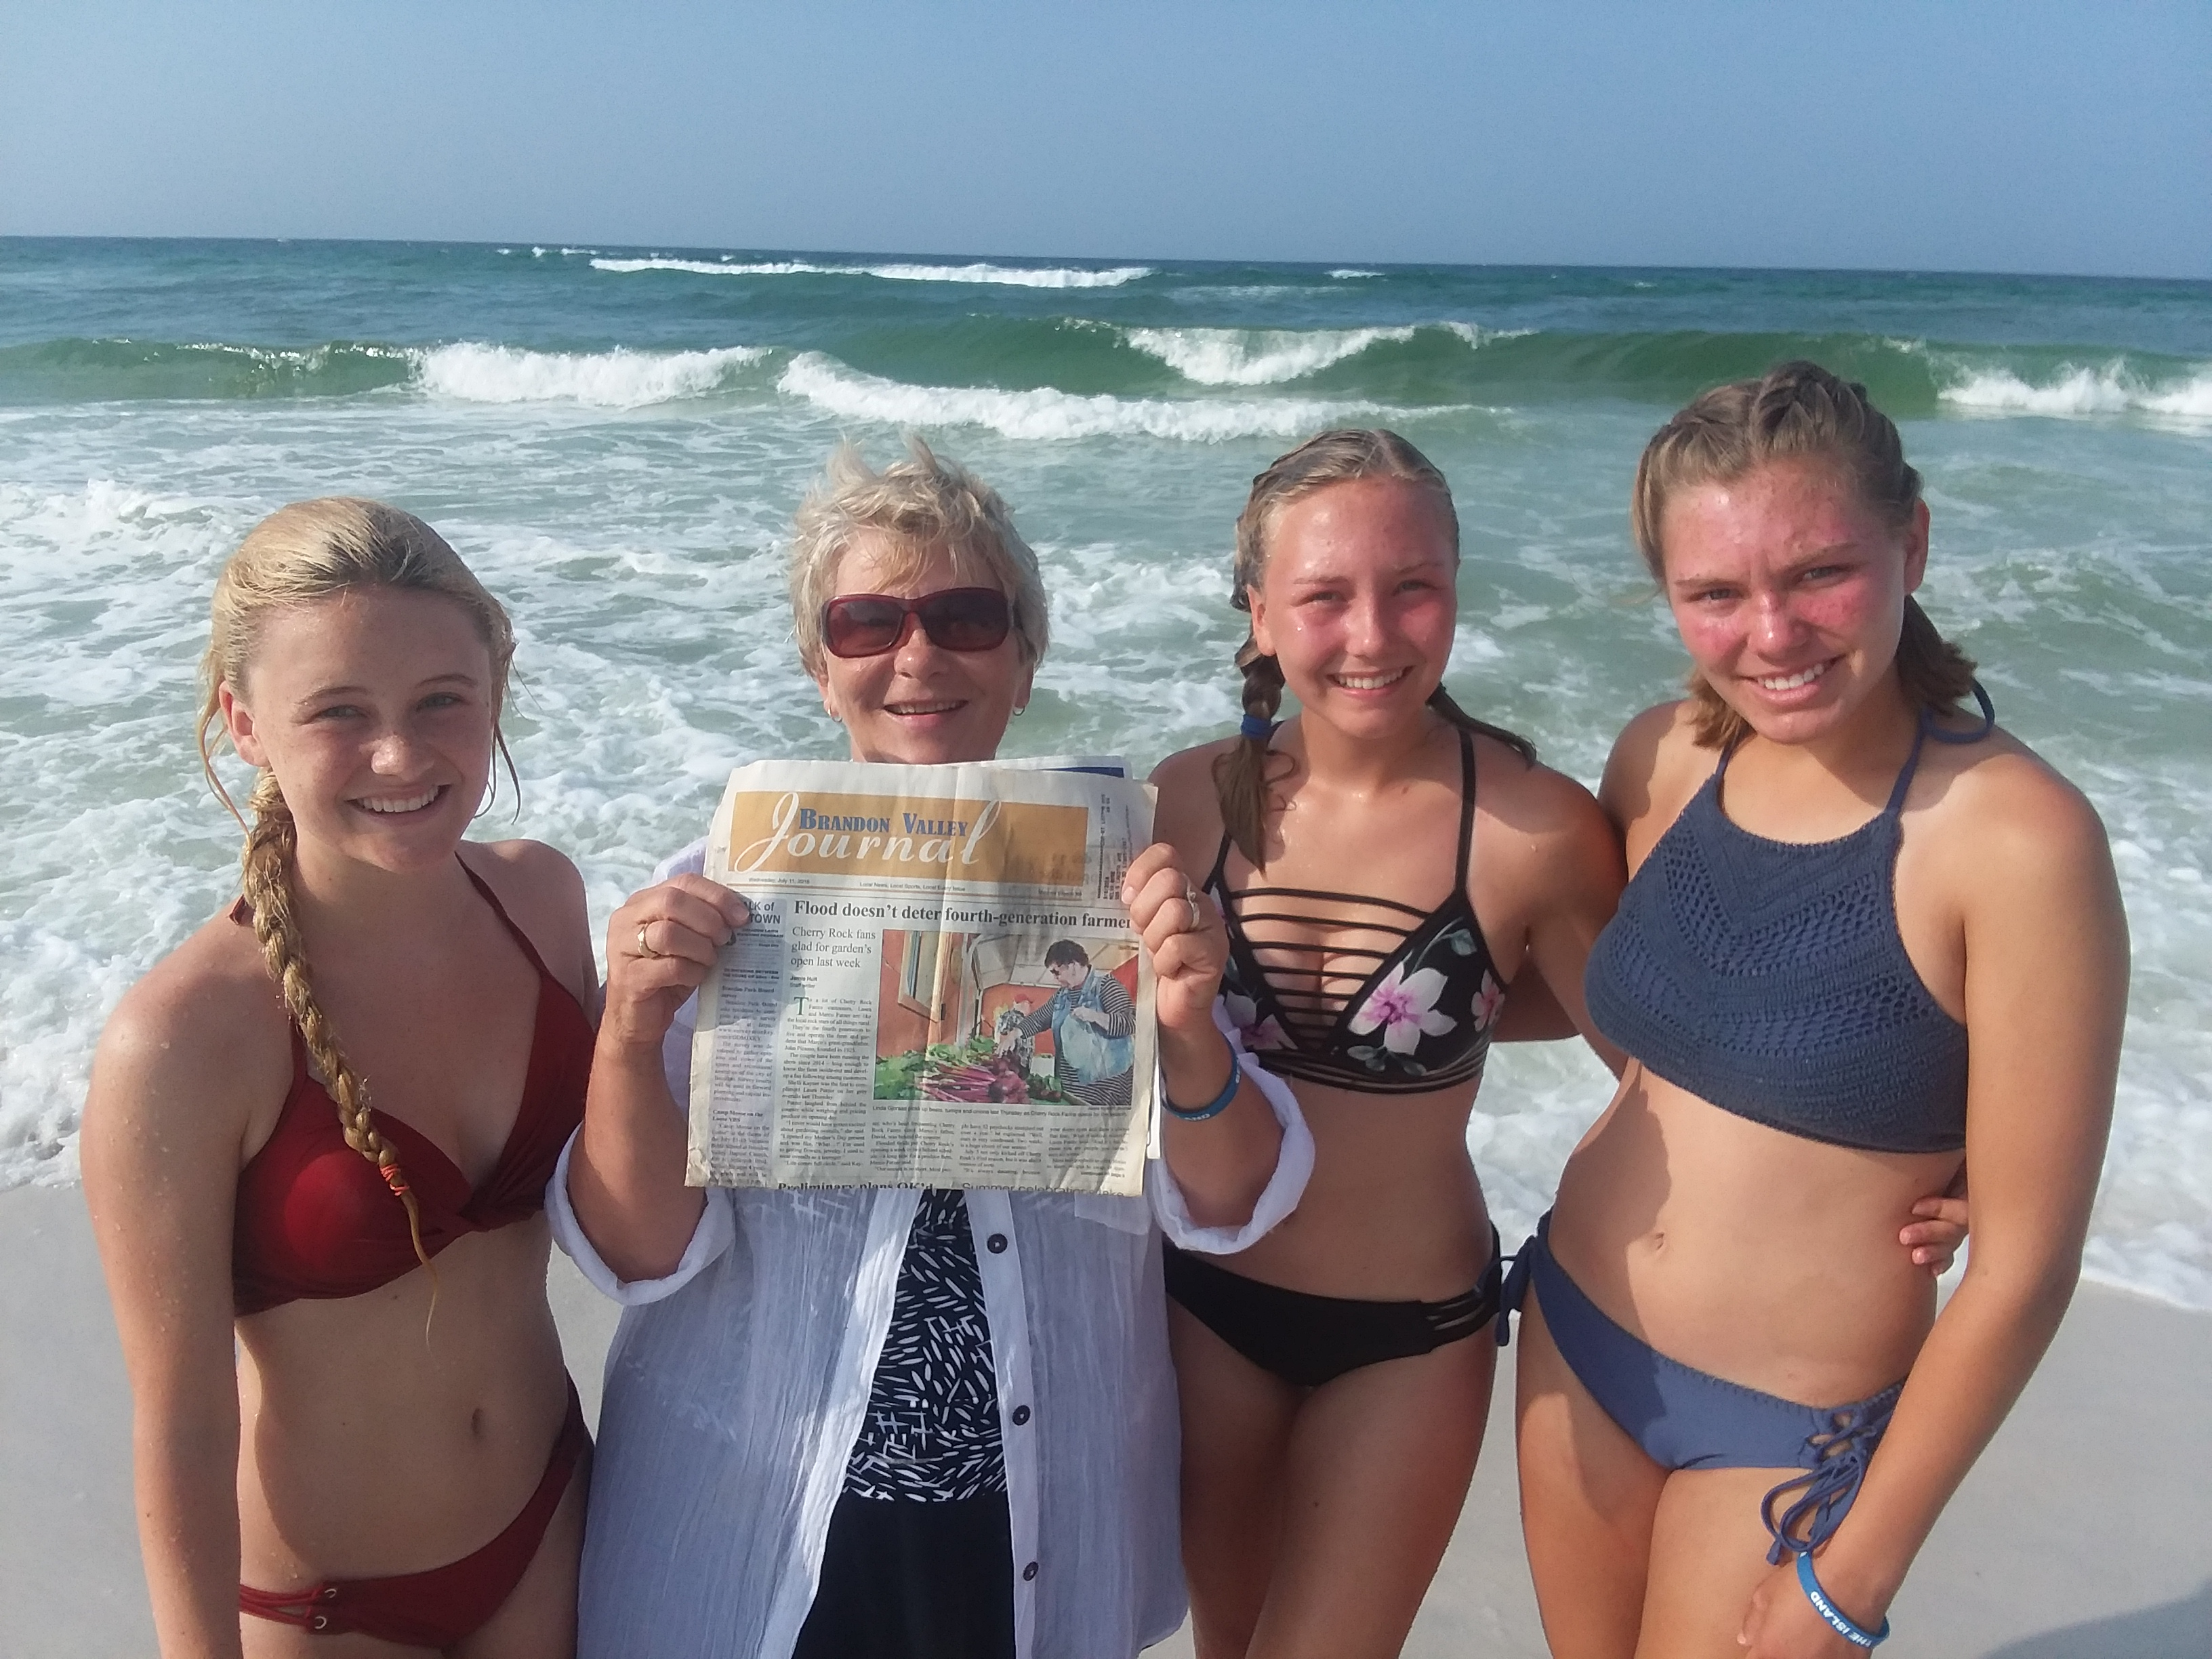 "Nelva Bose of Brandon soaks in the ocean in Destin, Fla., with her granddaughters <i>(from left)</i> Chloe Kilbride, Lauren VerSteeg and Kelsi VanSanten. Take your <i>Journal</i> on a journey, too, and capture the moment. Email photos to <a href=""mailto:editor@bvjournal.info"">editor@bvjournal.info</a>. <strong>Submitted photo.</strong>*/"